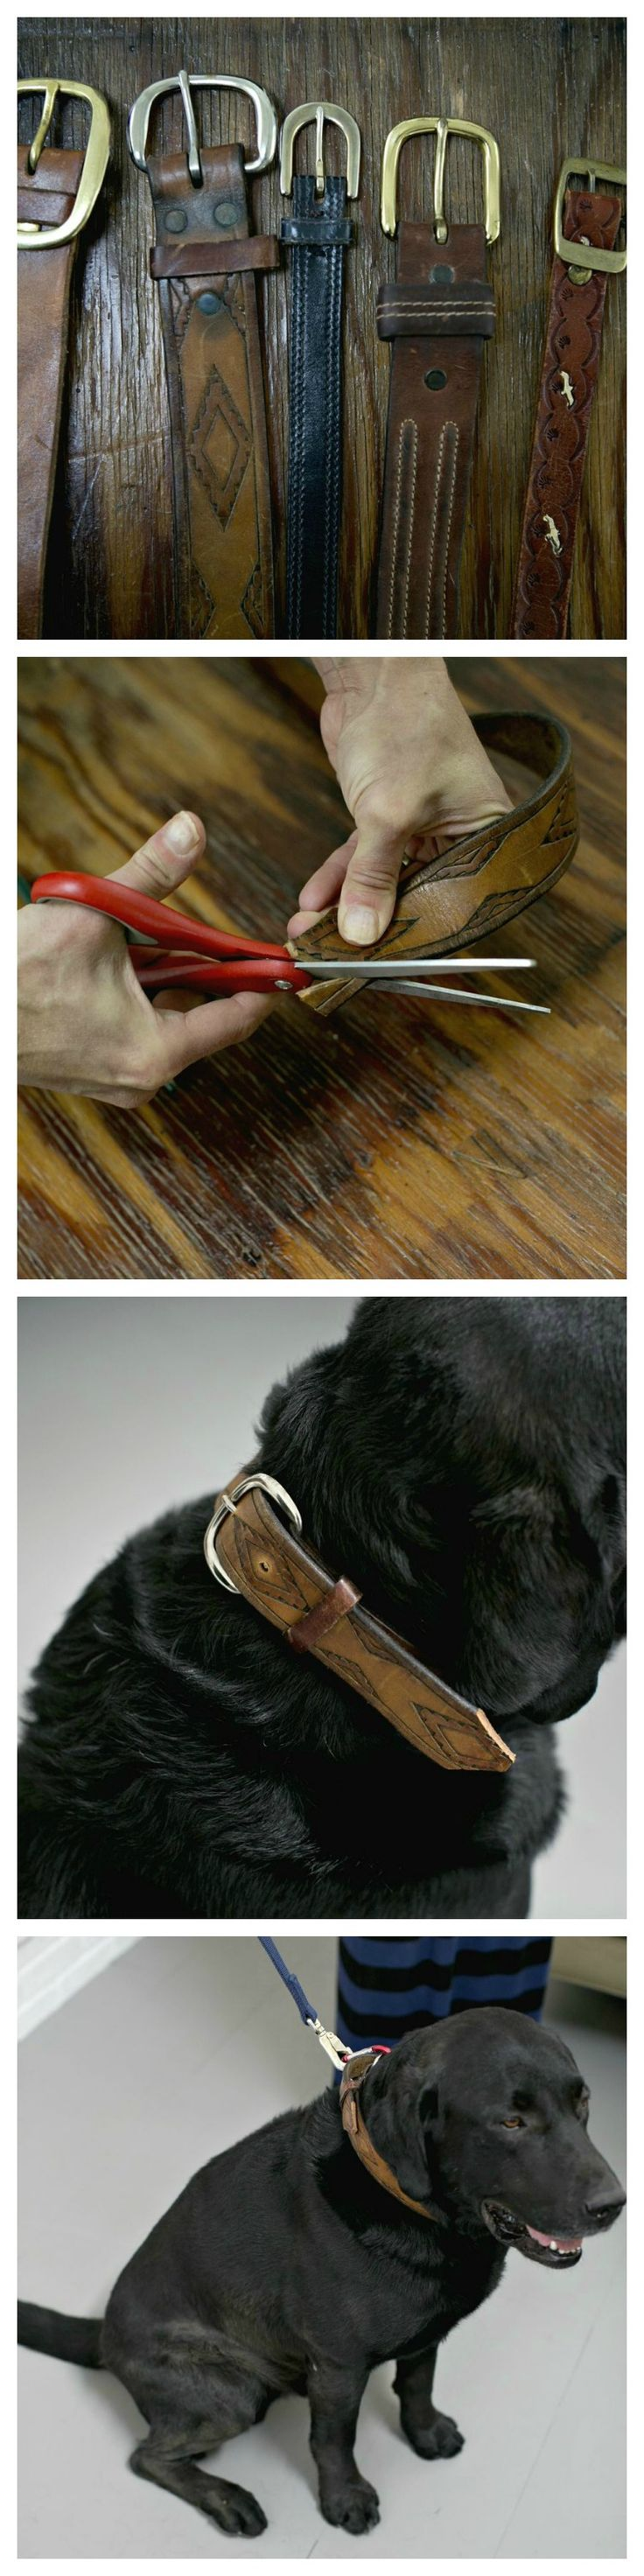 DIY: dog collar from vintage belt. Perfect for huge dogs! The main pet stores don't have collars big enough!